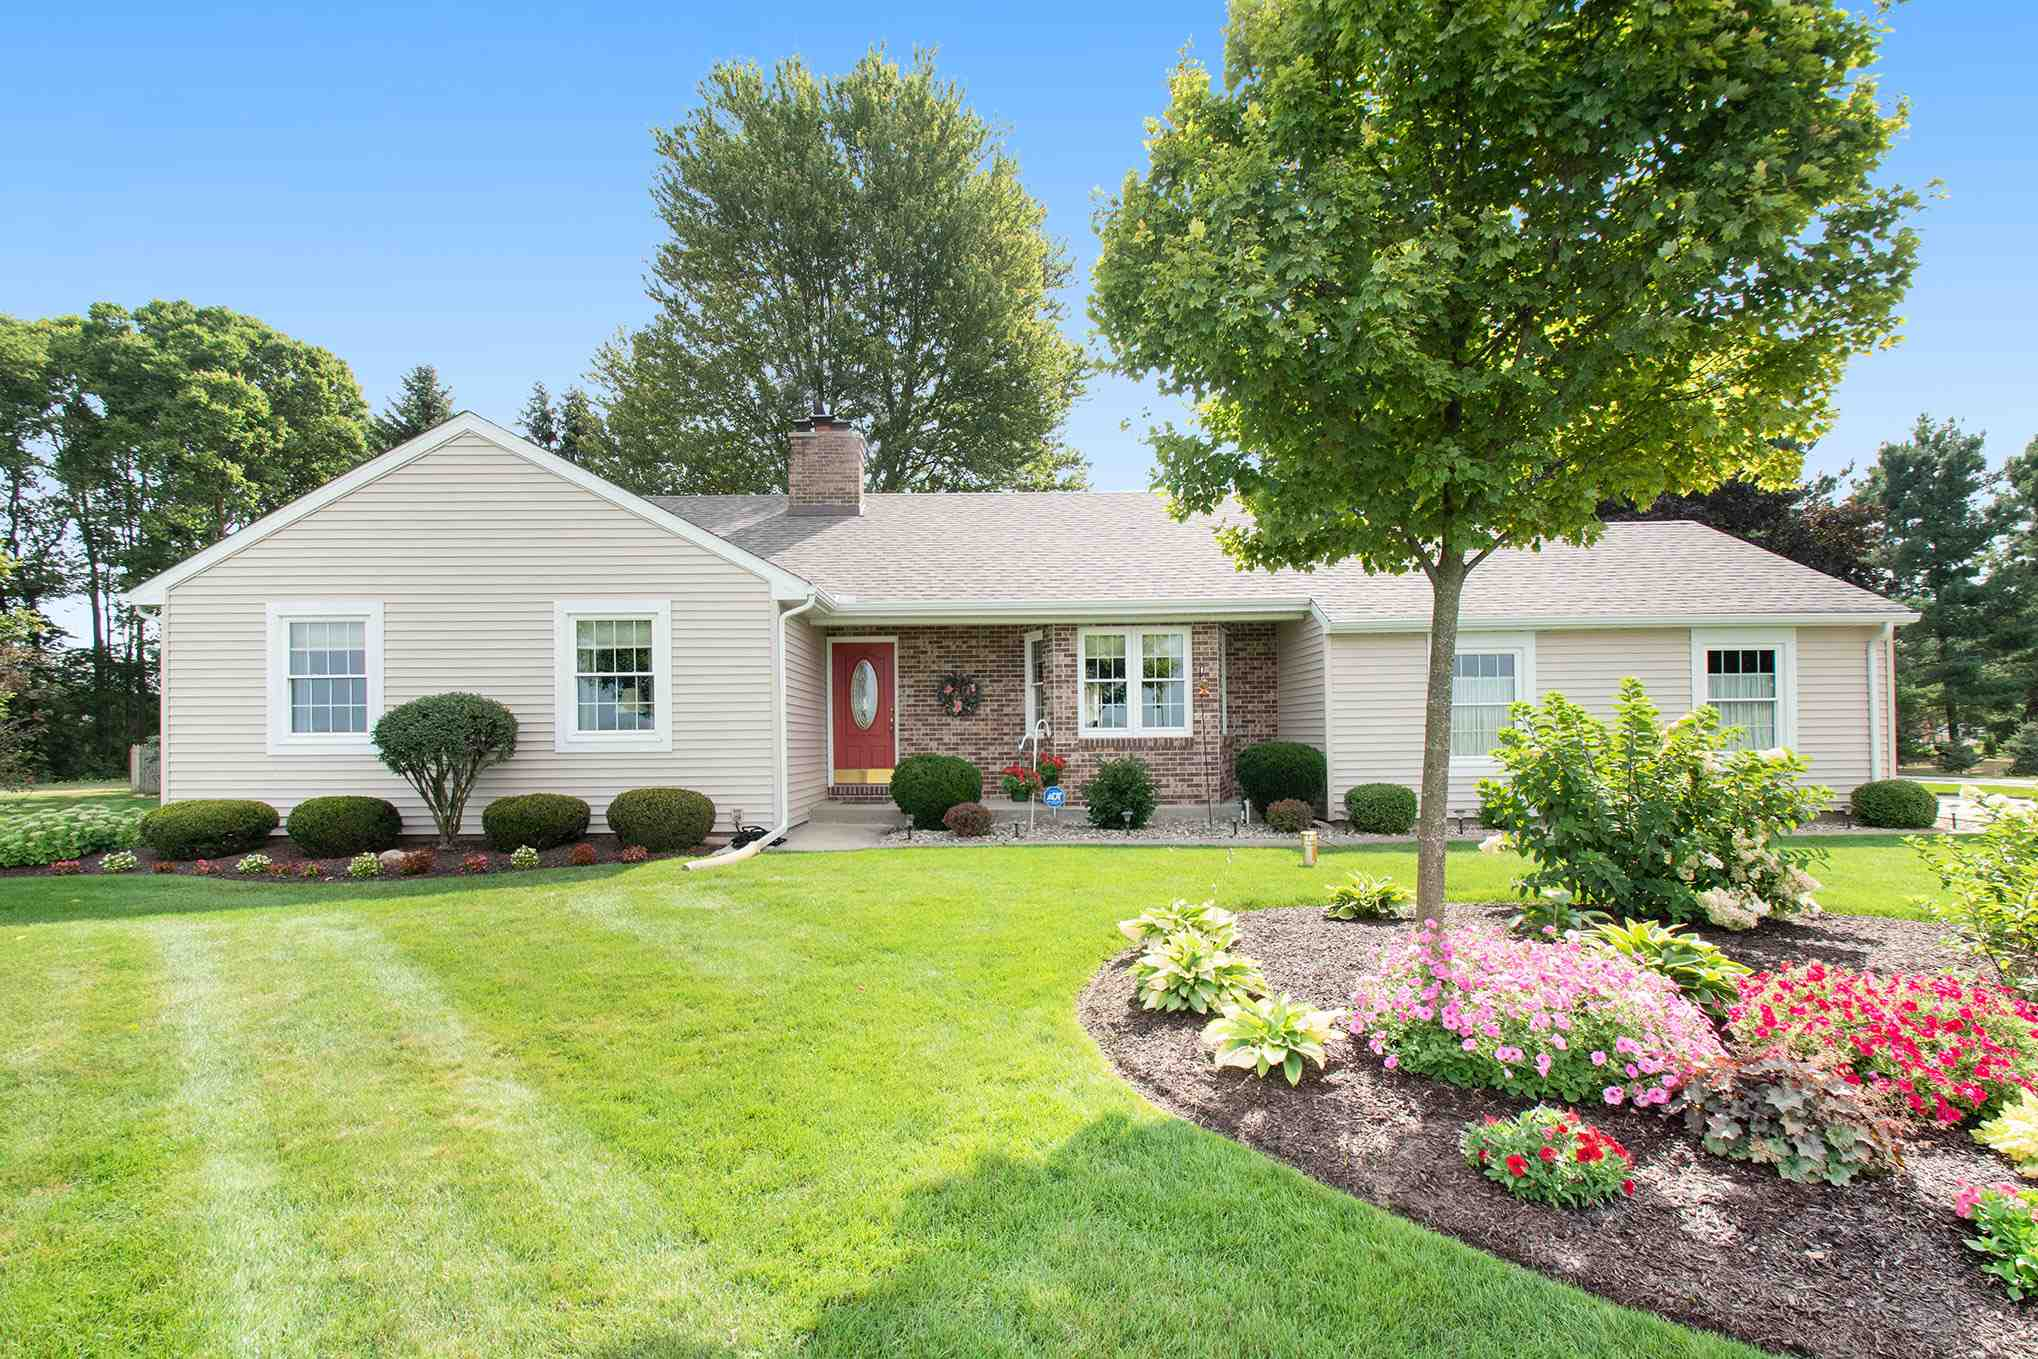 68330 County Road 21, New Paris, IN 46553